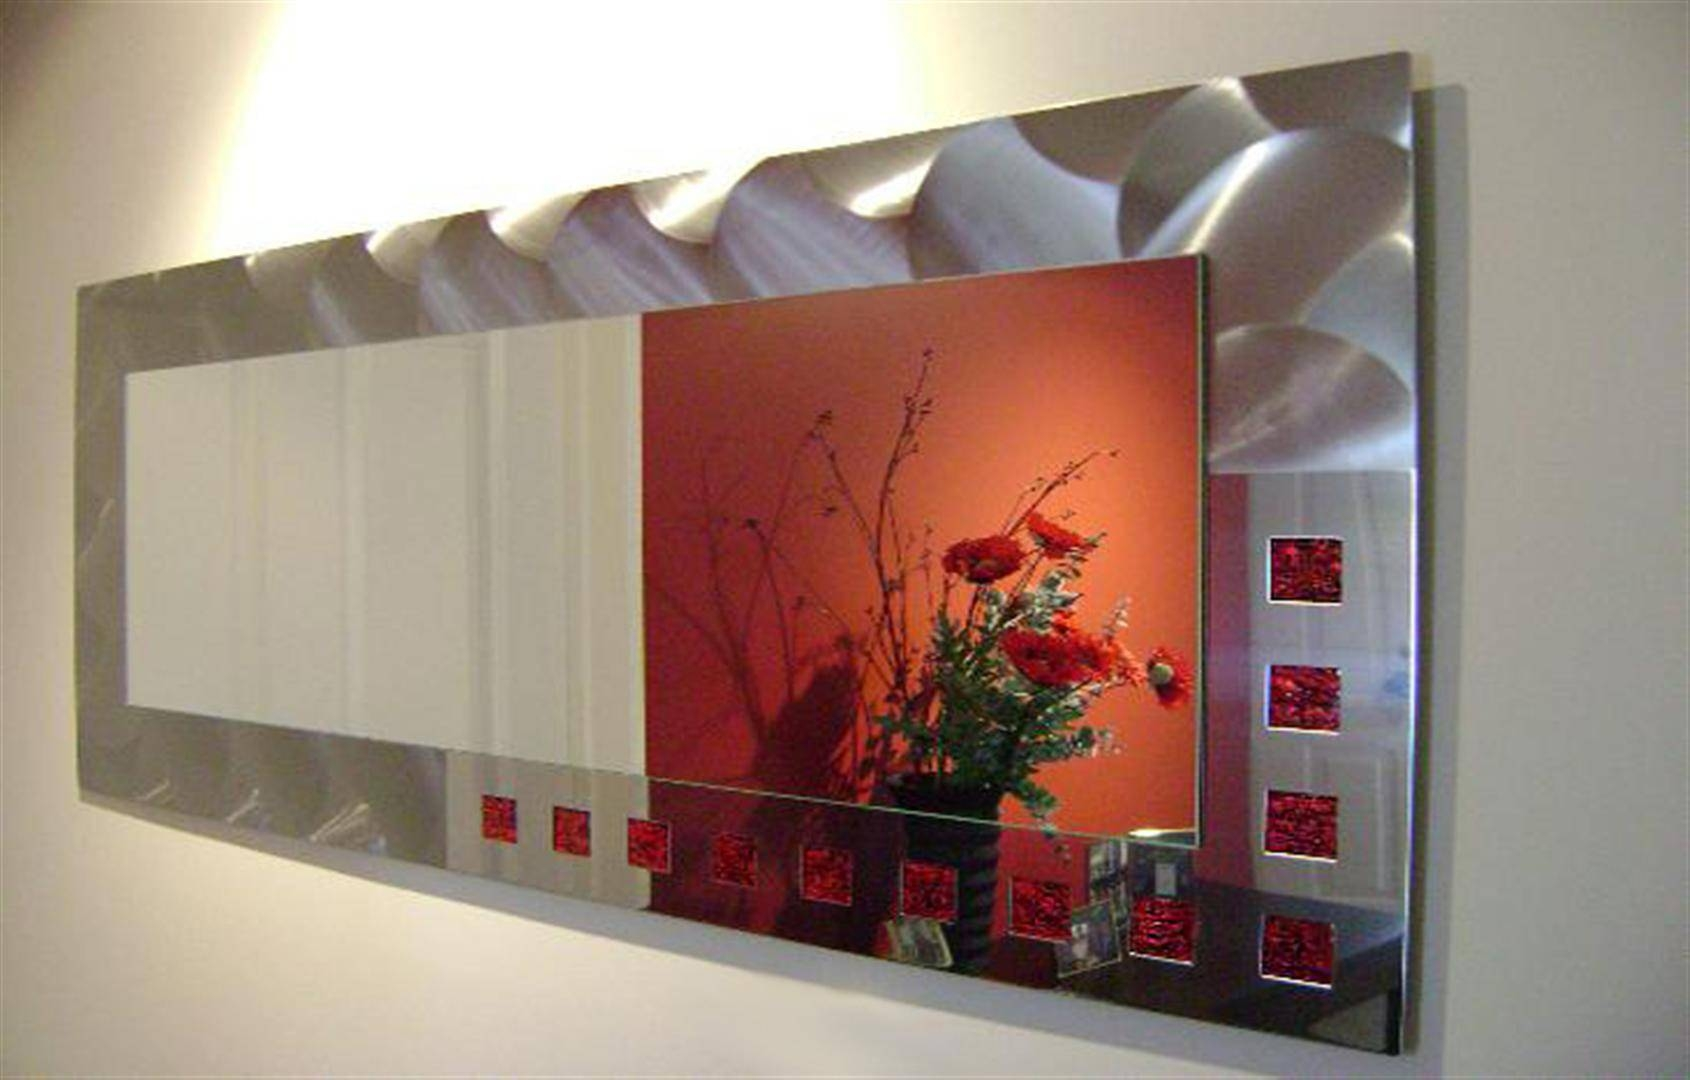 Designer Stainless Steel Mirrors Archives - Freestyle Mirrors inside Red Mirrors (Image 12 of 25)